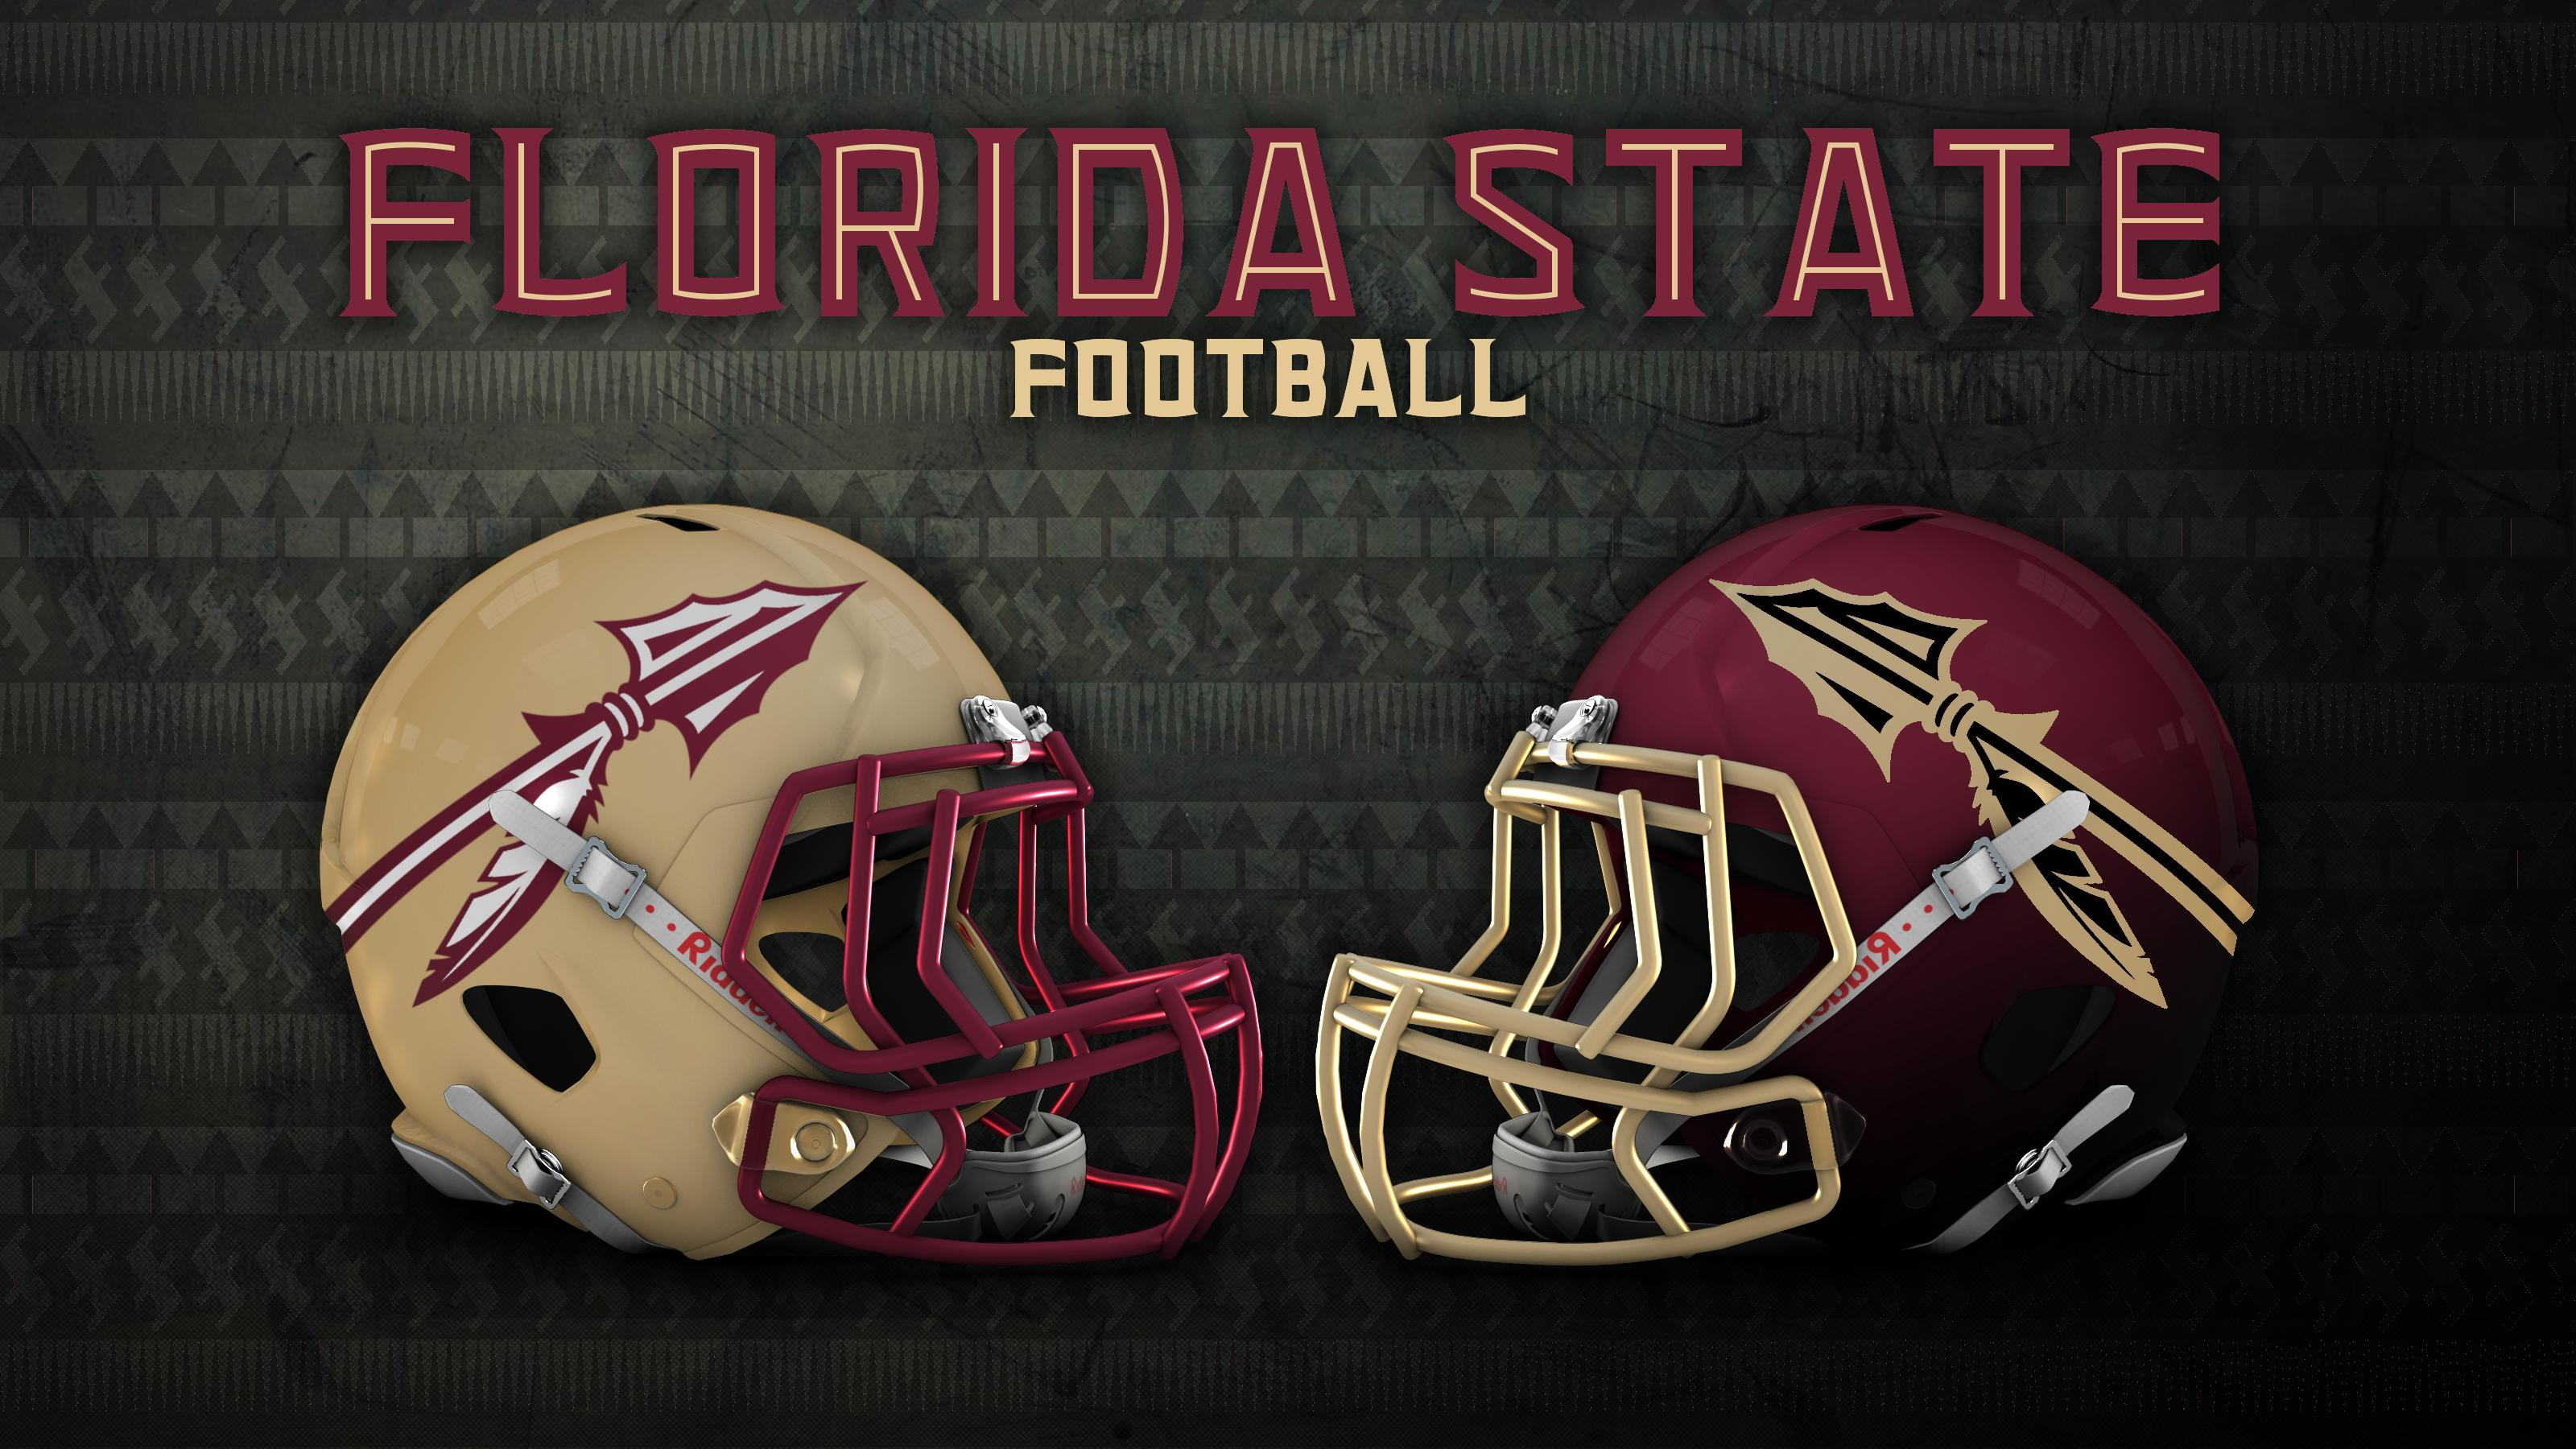 FSU - Miami Rivalry Weekend Wallpaper (AND MORE!) - Concepts - Chris ...